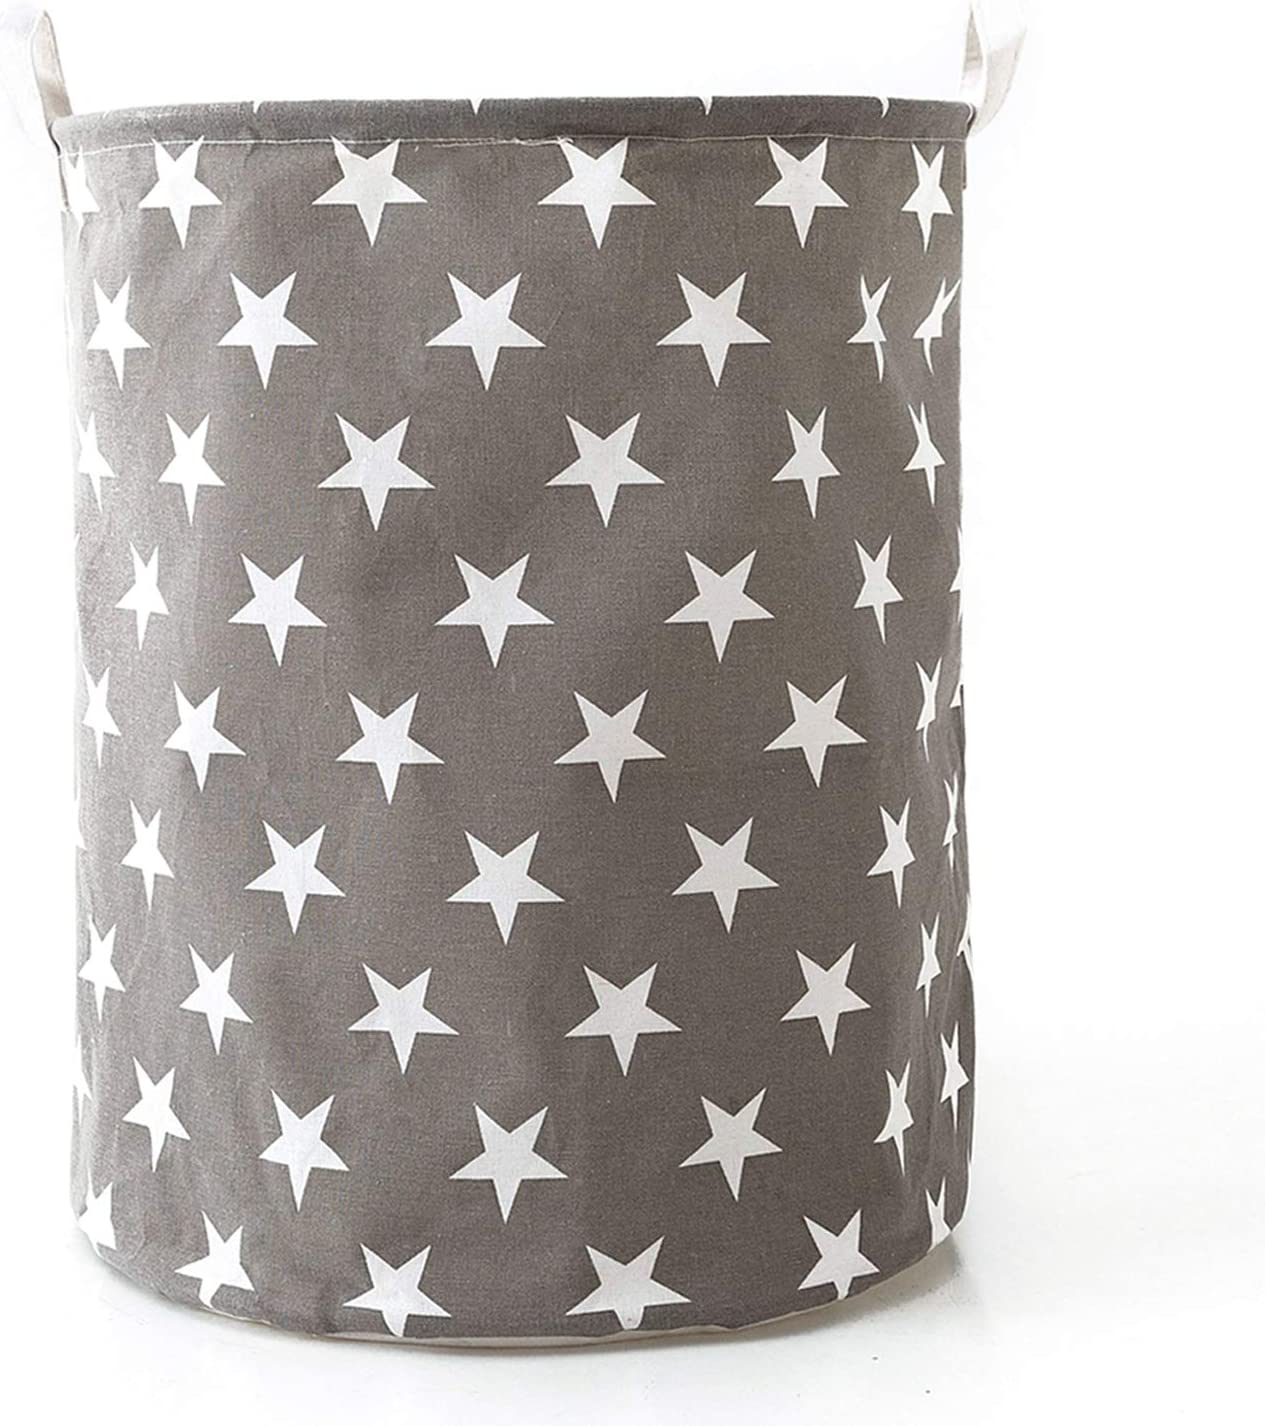 "Futureferry Large Laundry Basket, Waterproof Coating Folding Laundry Hamper Bucket Cylindric Burlap Canvas Storage Basket with Stars Design (19.7"", Grey)"